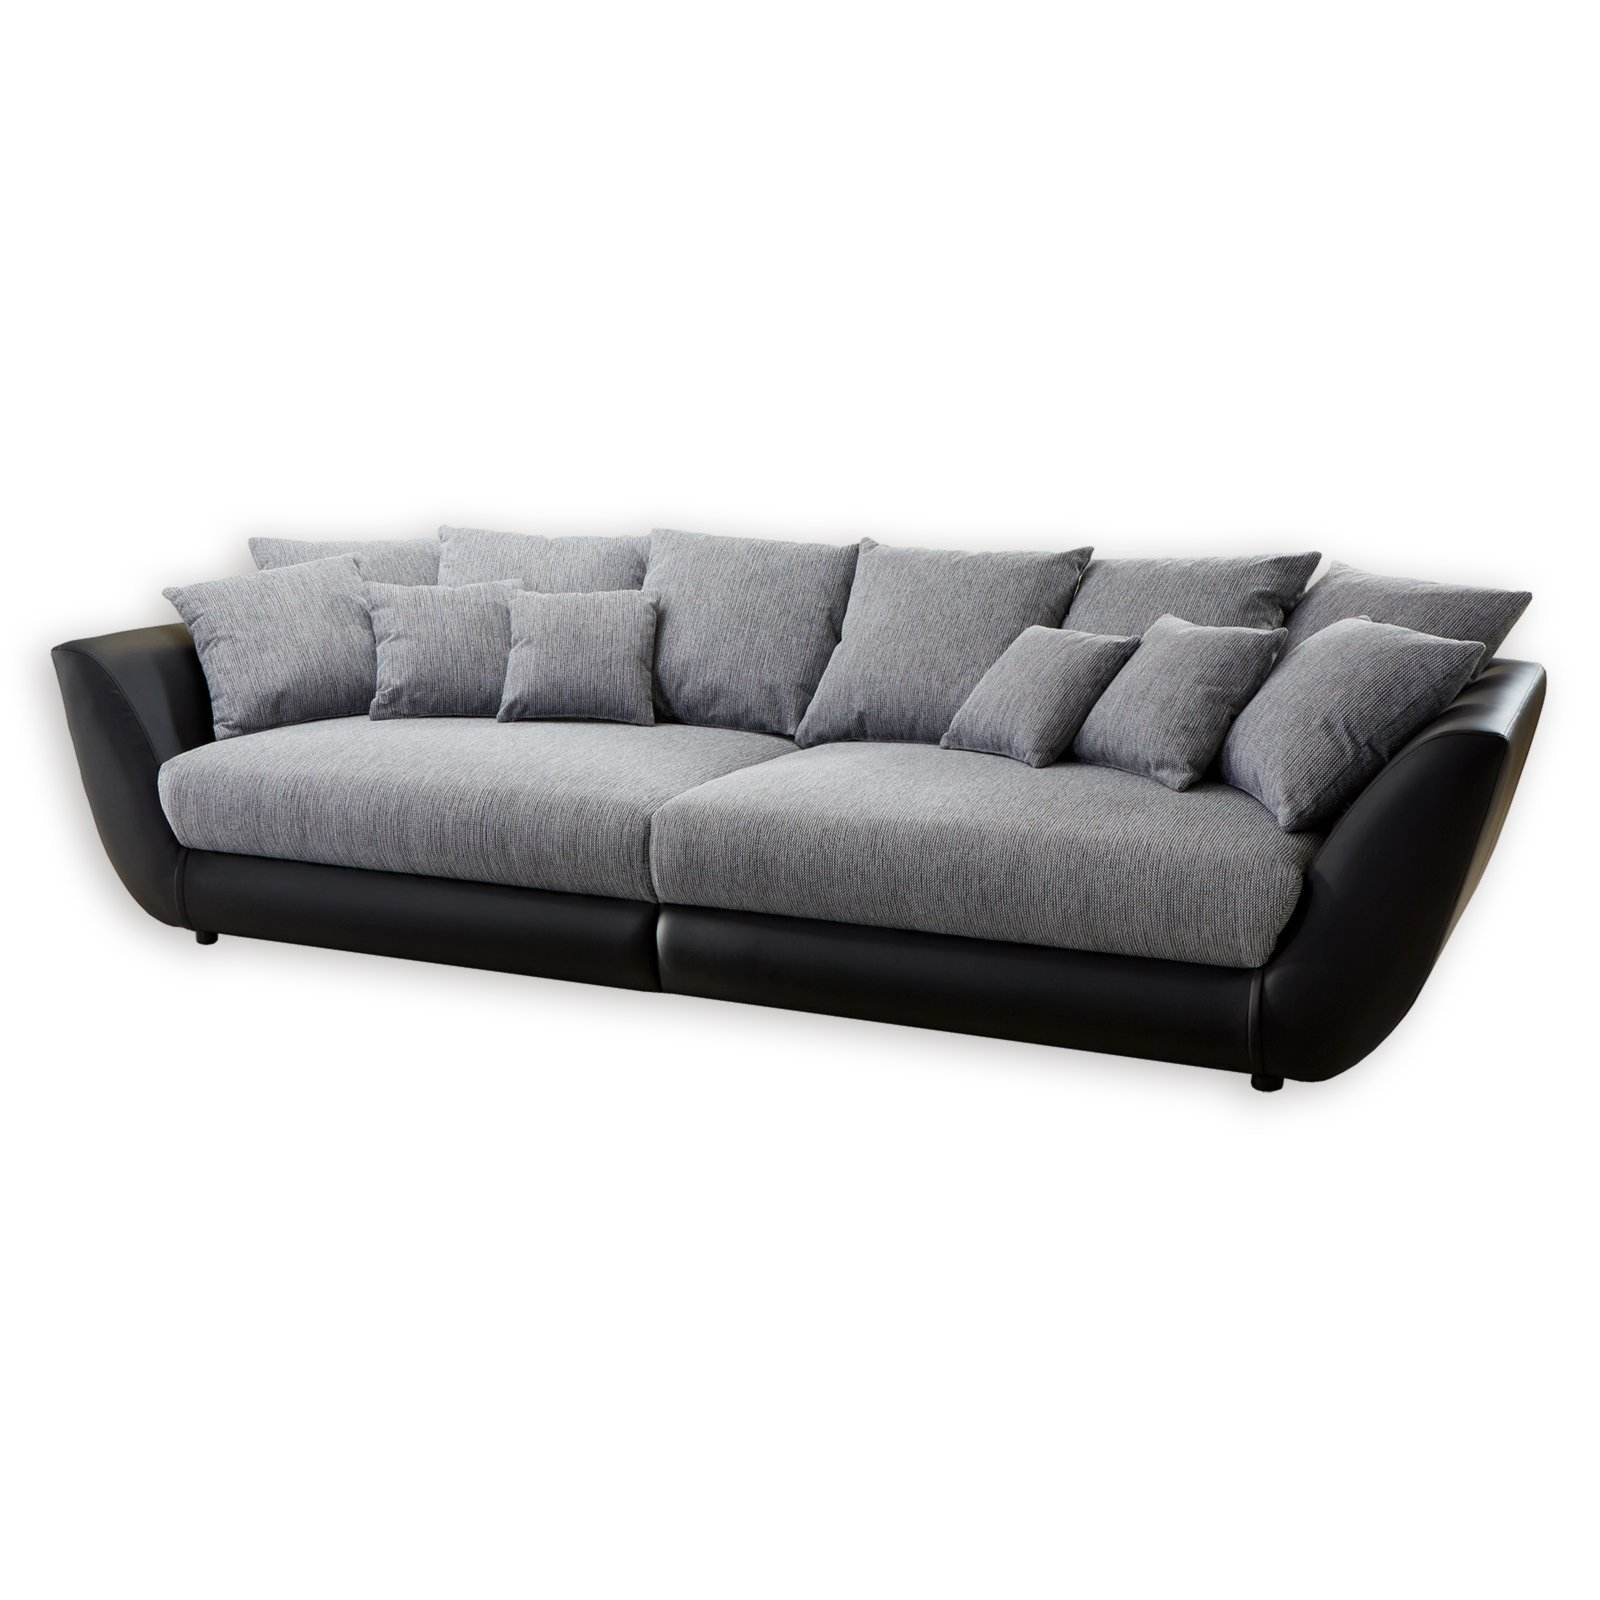 roller big sofa schwarz grau federkern mit 12 kissen ebay. Black Bedroom Furniture Sets. Home Design Ideas